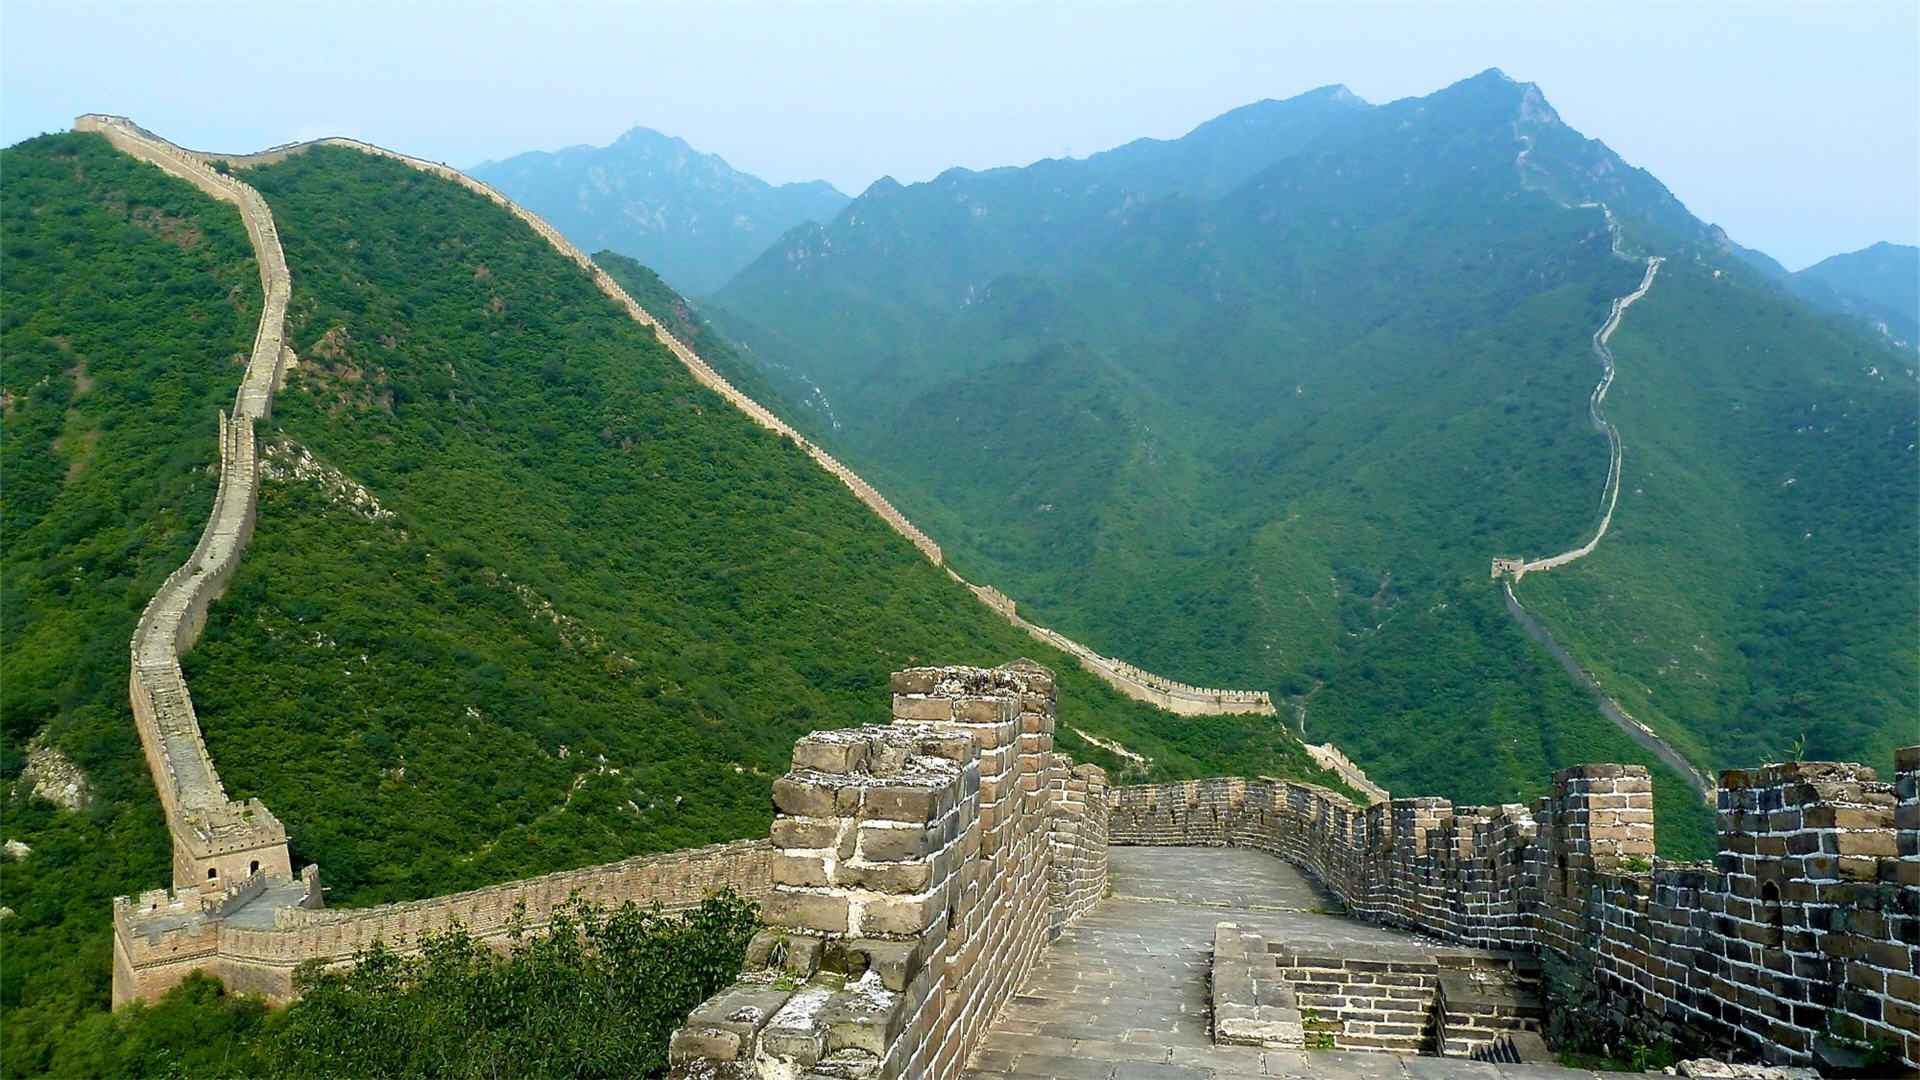 Great Wall Of China clipart Great Wall Of China Wallpaper High Resolution Earth Google Great City